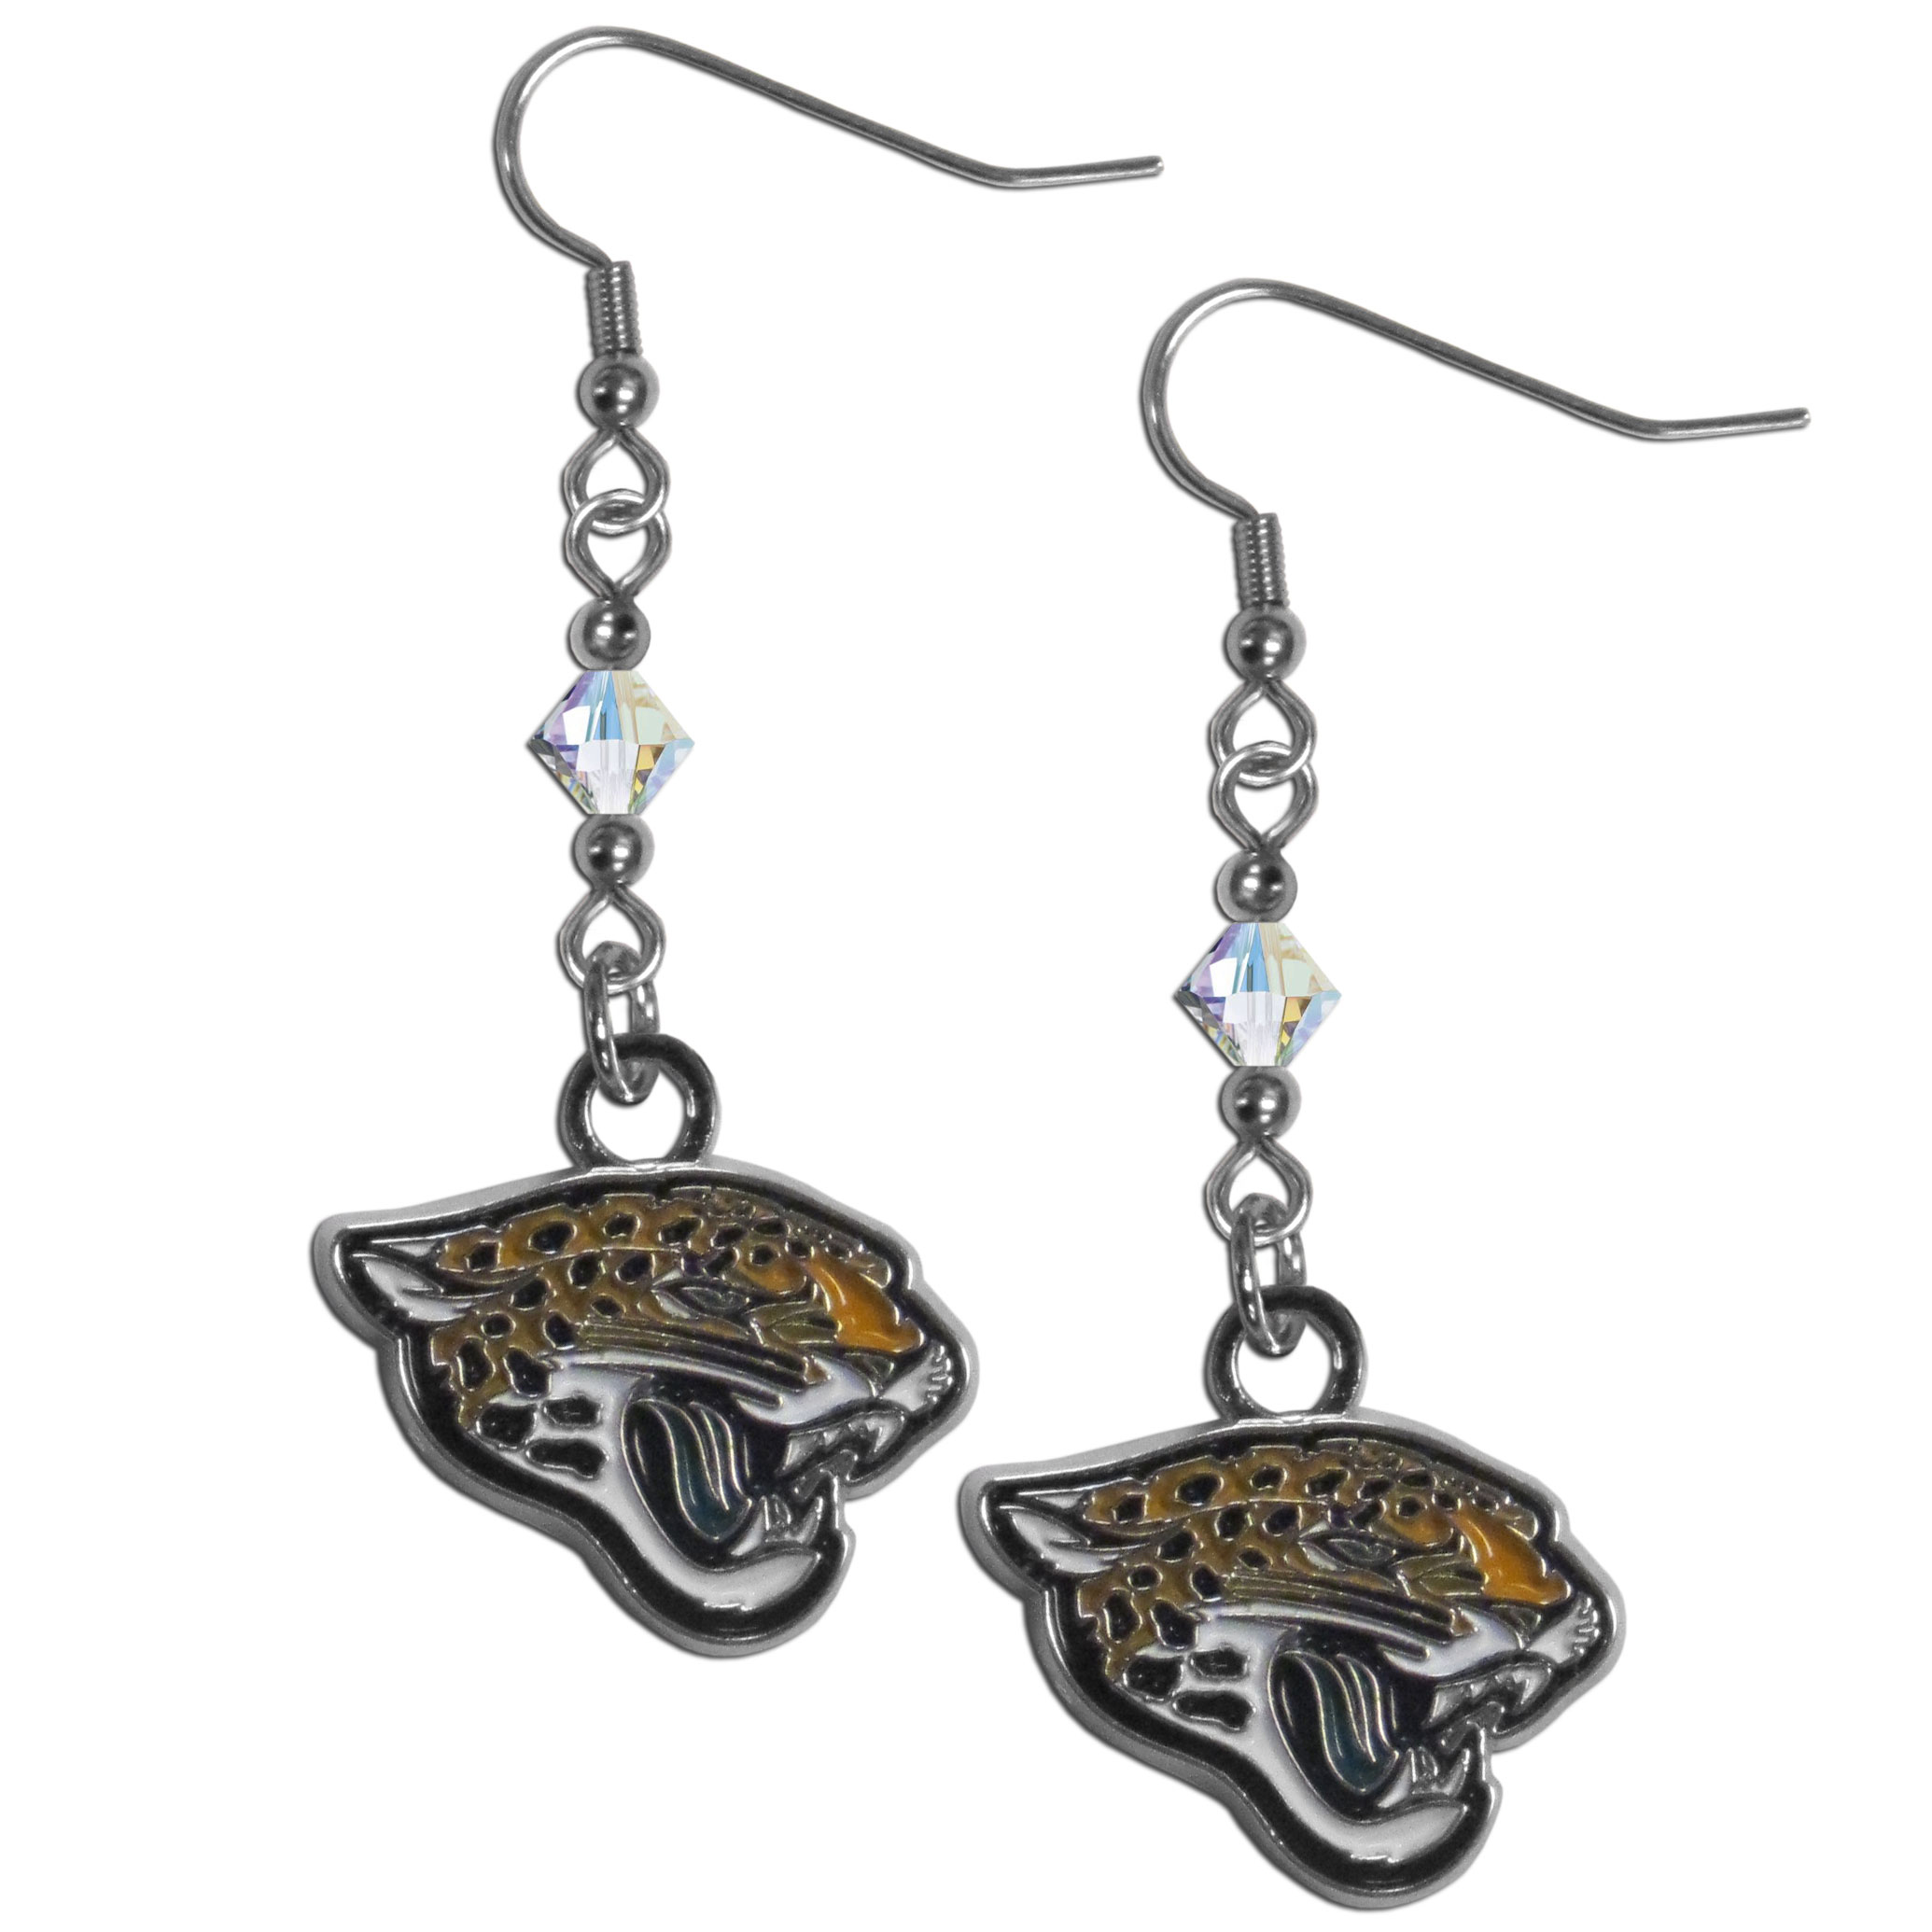 Jacksonville Jaguars Chrome Dangle Earrings - Our NFL crystal dangle earrings are the perfect accessory for your game day outfit! The earrings are approximately 1.5 inches long and feature an iridescent crystal bead and nickel free chrome Jacksonville Jaguars charm on nickel free, hypoallergenic fishhook posts. Officially licensed NFL product Licensee: Siskiyou Buckle Thank you for visiting CrazedOutSports.com